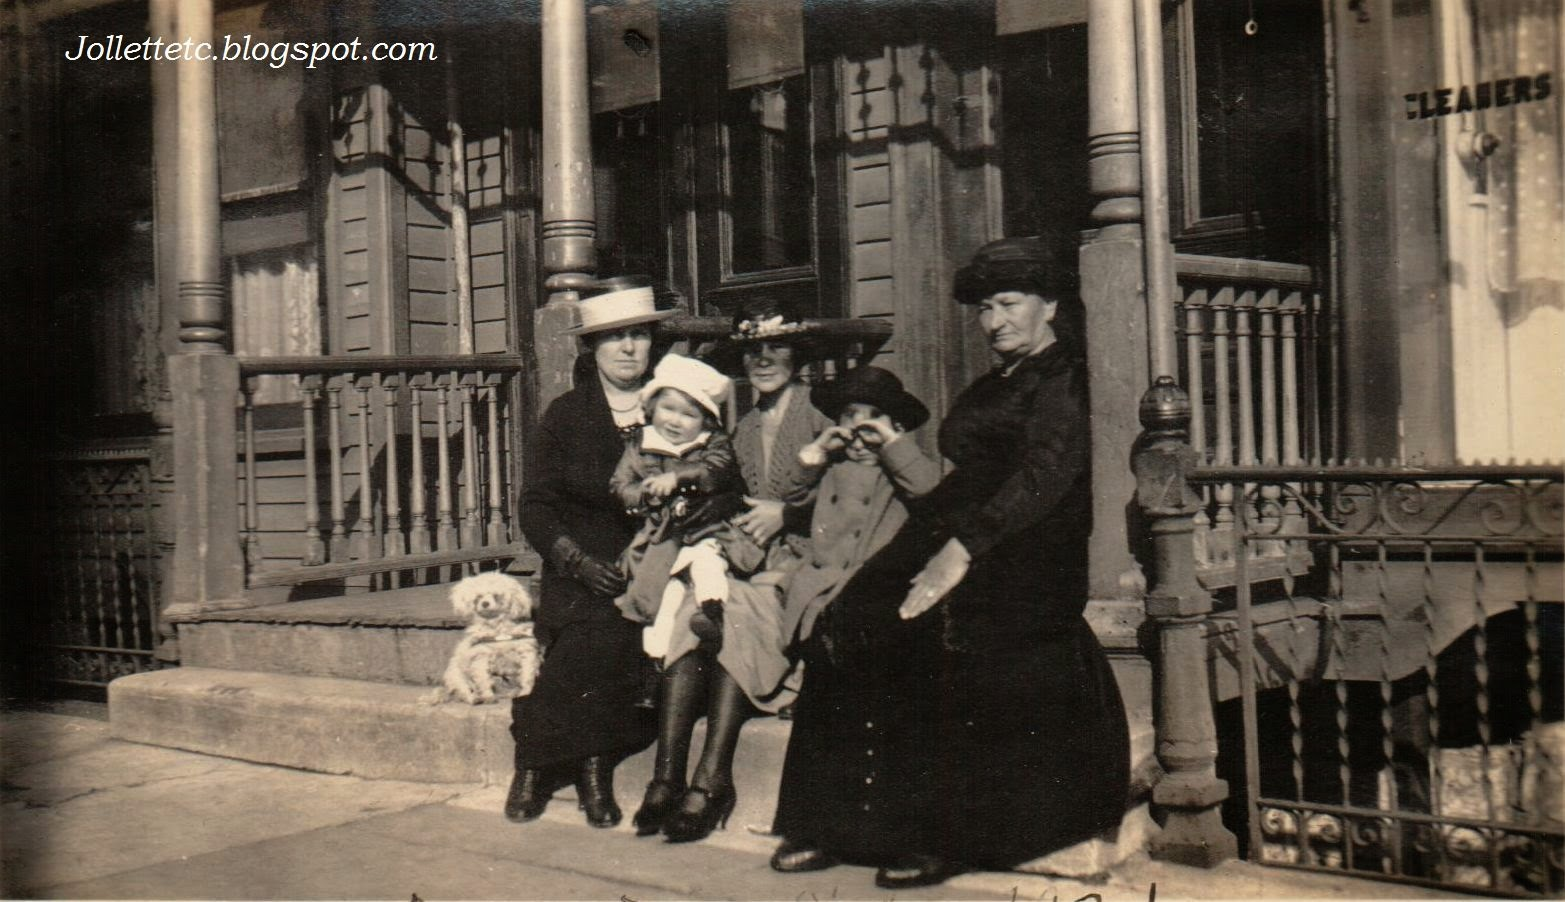 Family of John Jr. and Bob, in the Bronx 1921